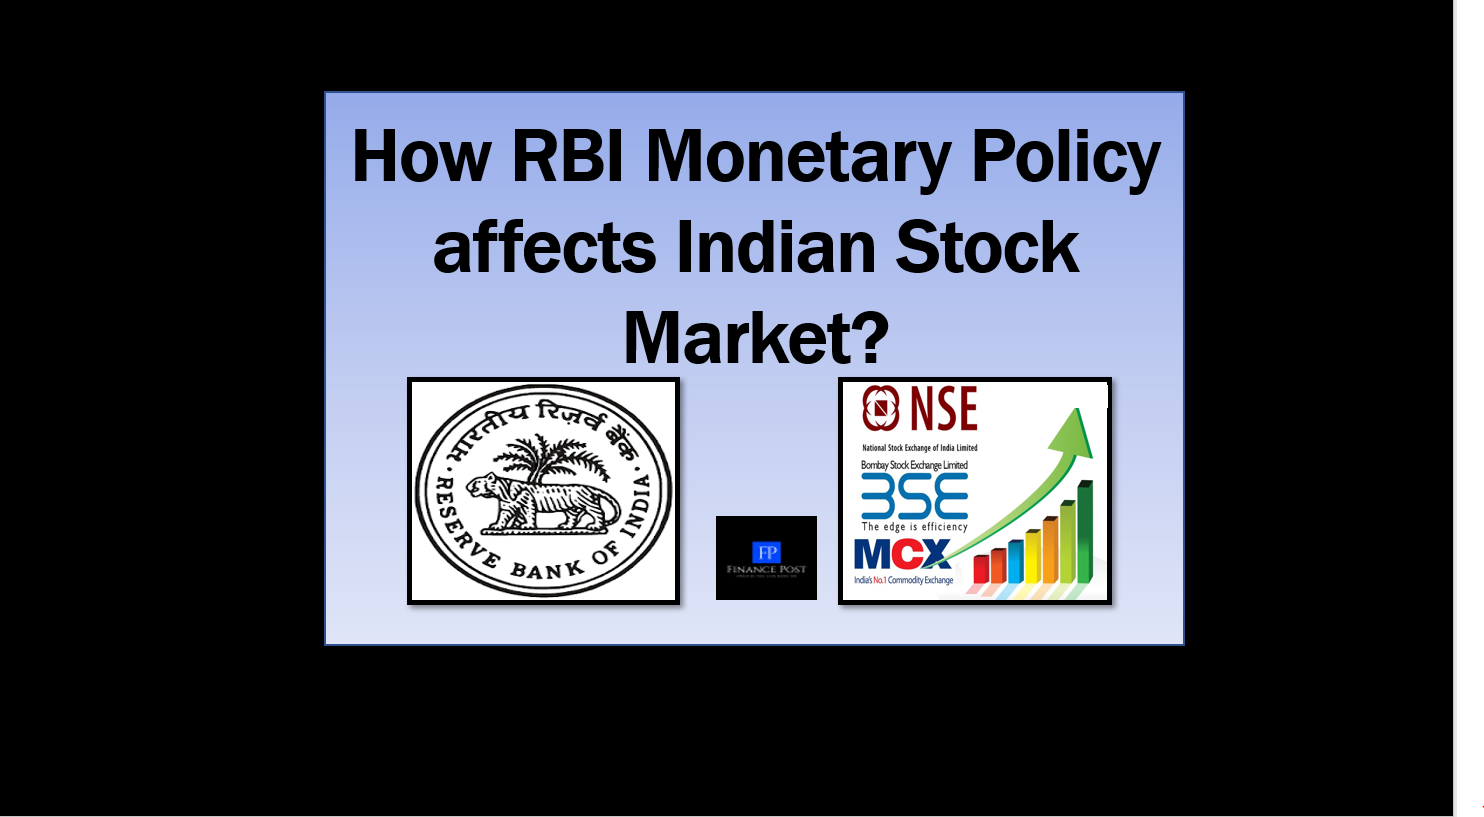 How RBI Monetary Policy affects Indian Stock Market?